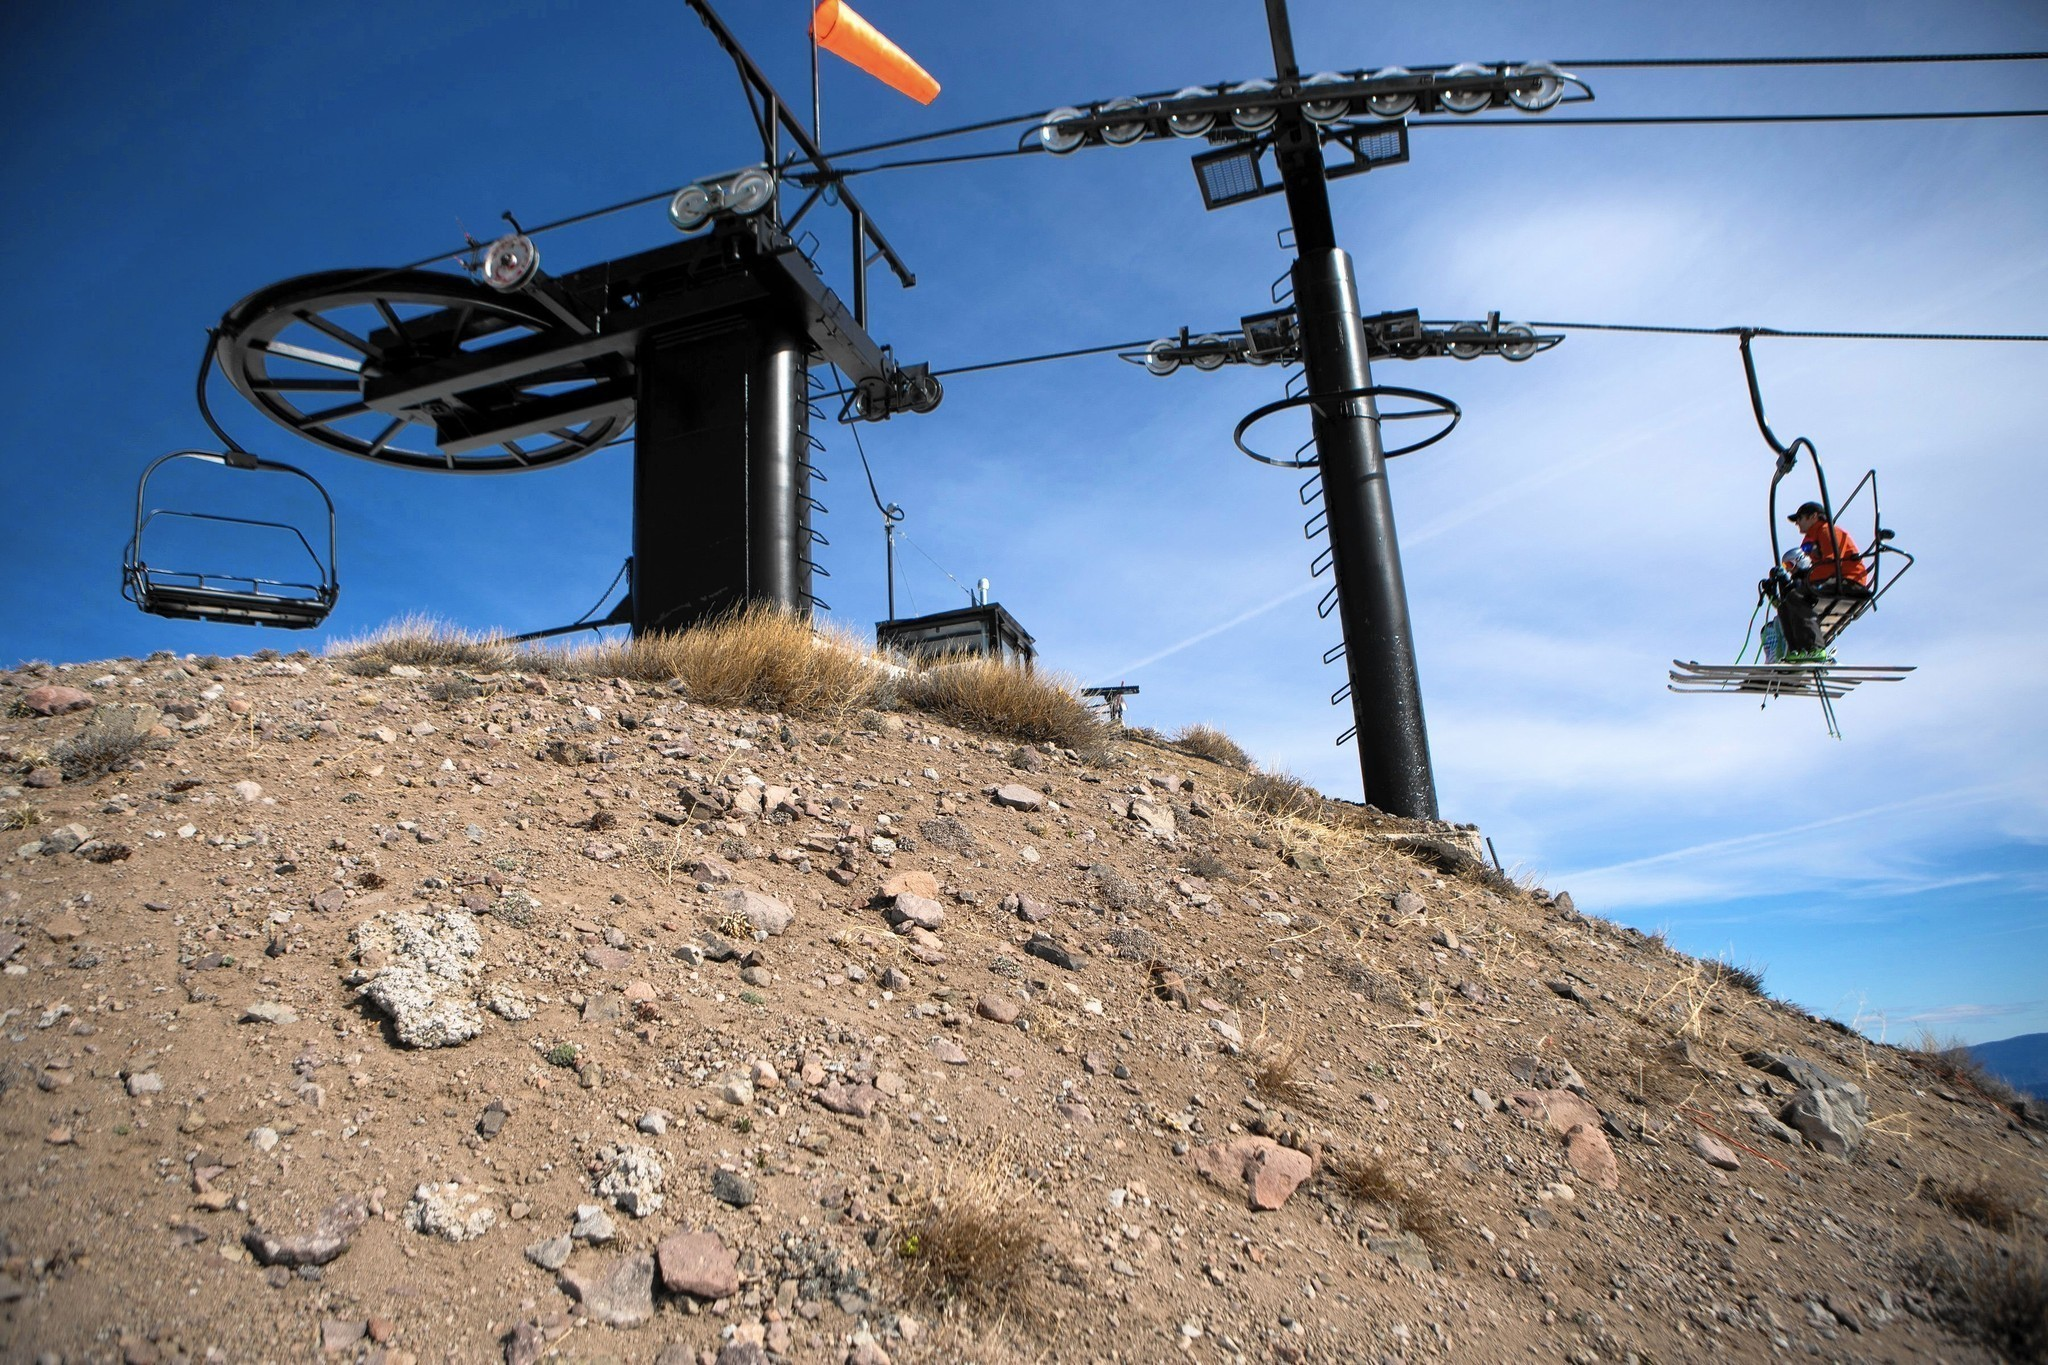 Ski resorts are investing in zip lines, mountain bike trails and other activities to make up for lack of snow